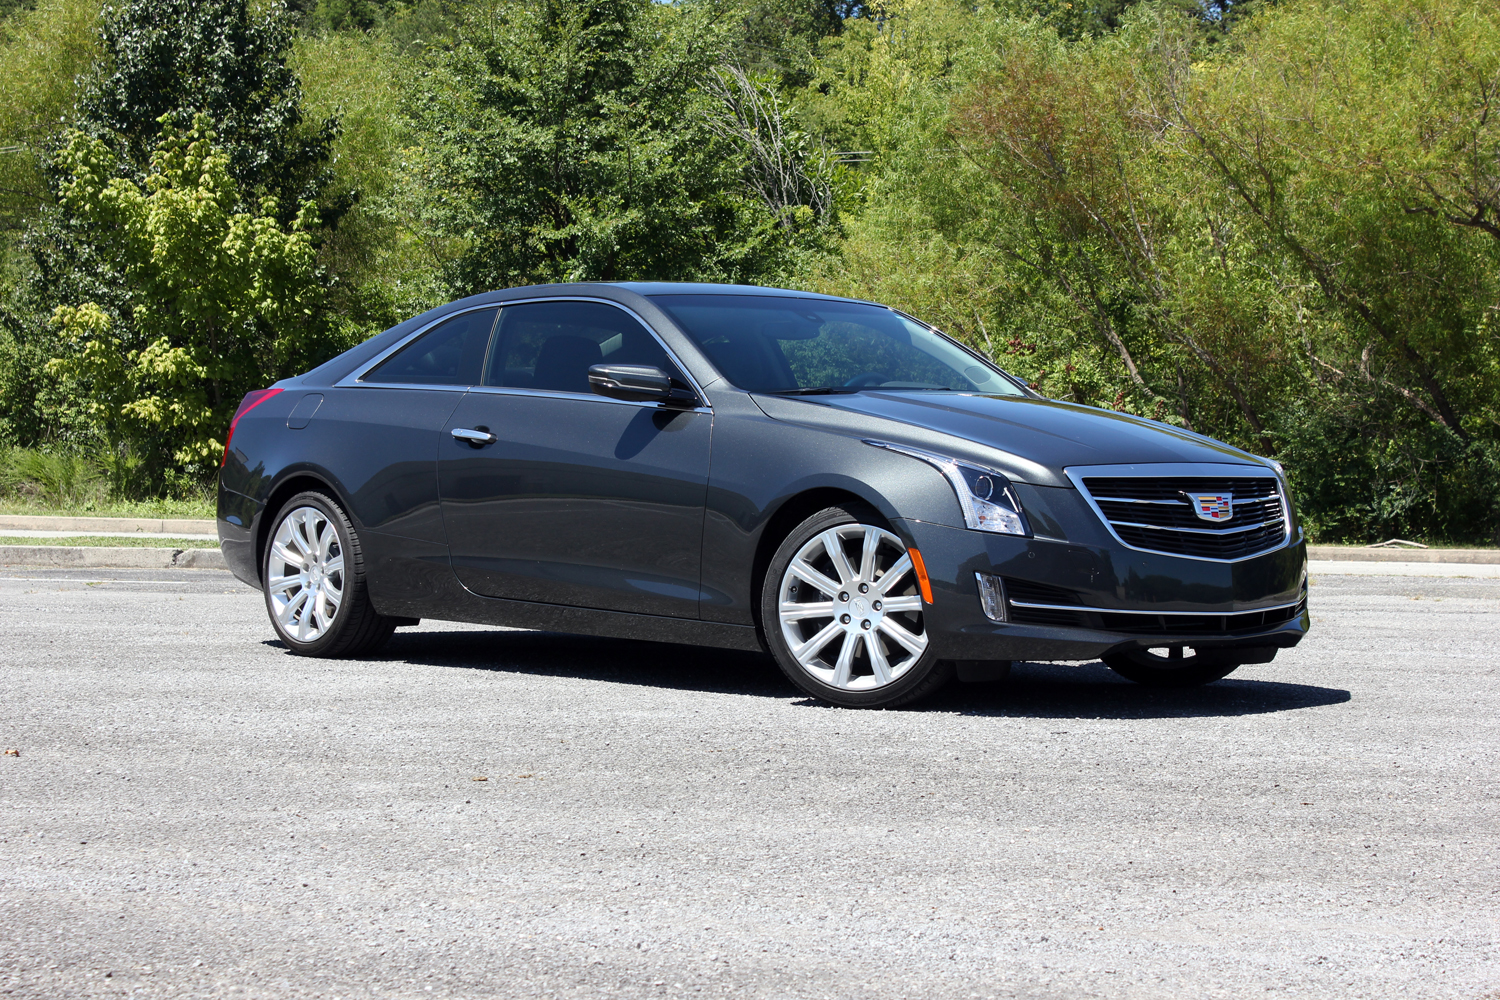 2015 Cadillac Ats Coupe 2 0t Video Review Autotalk